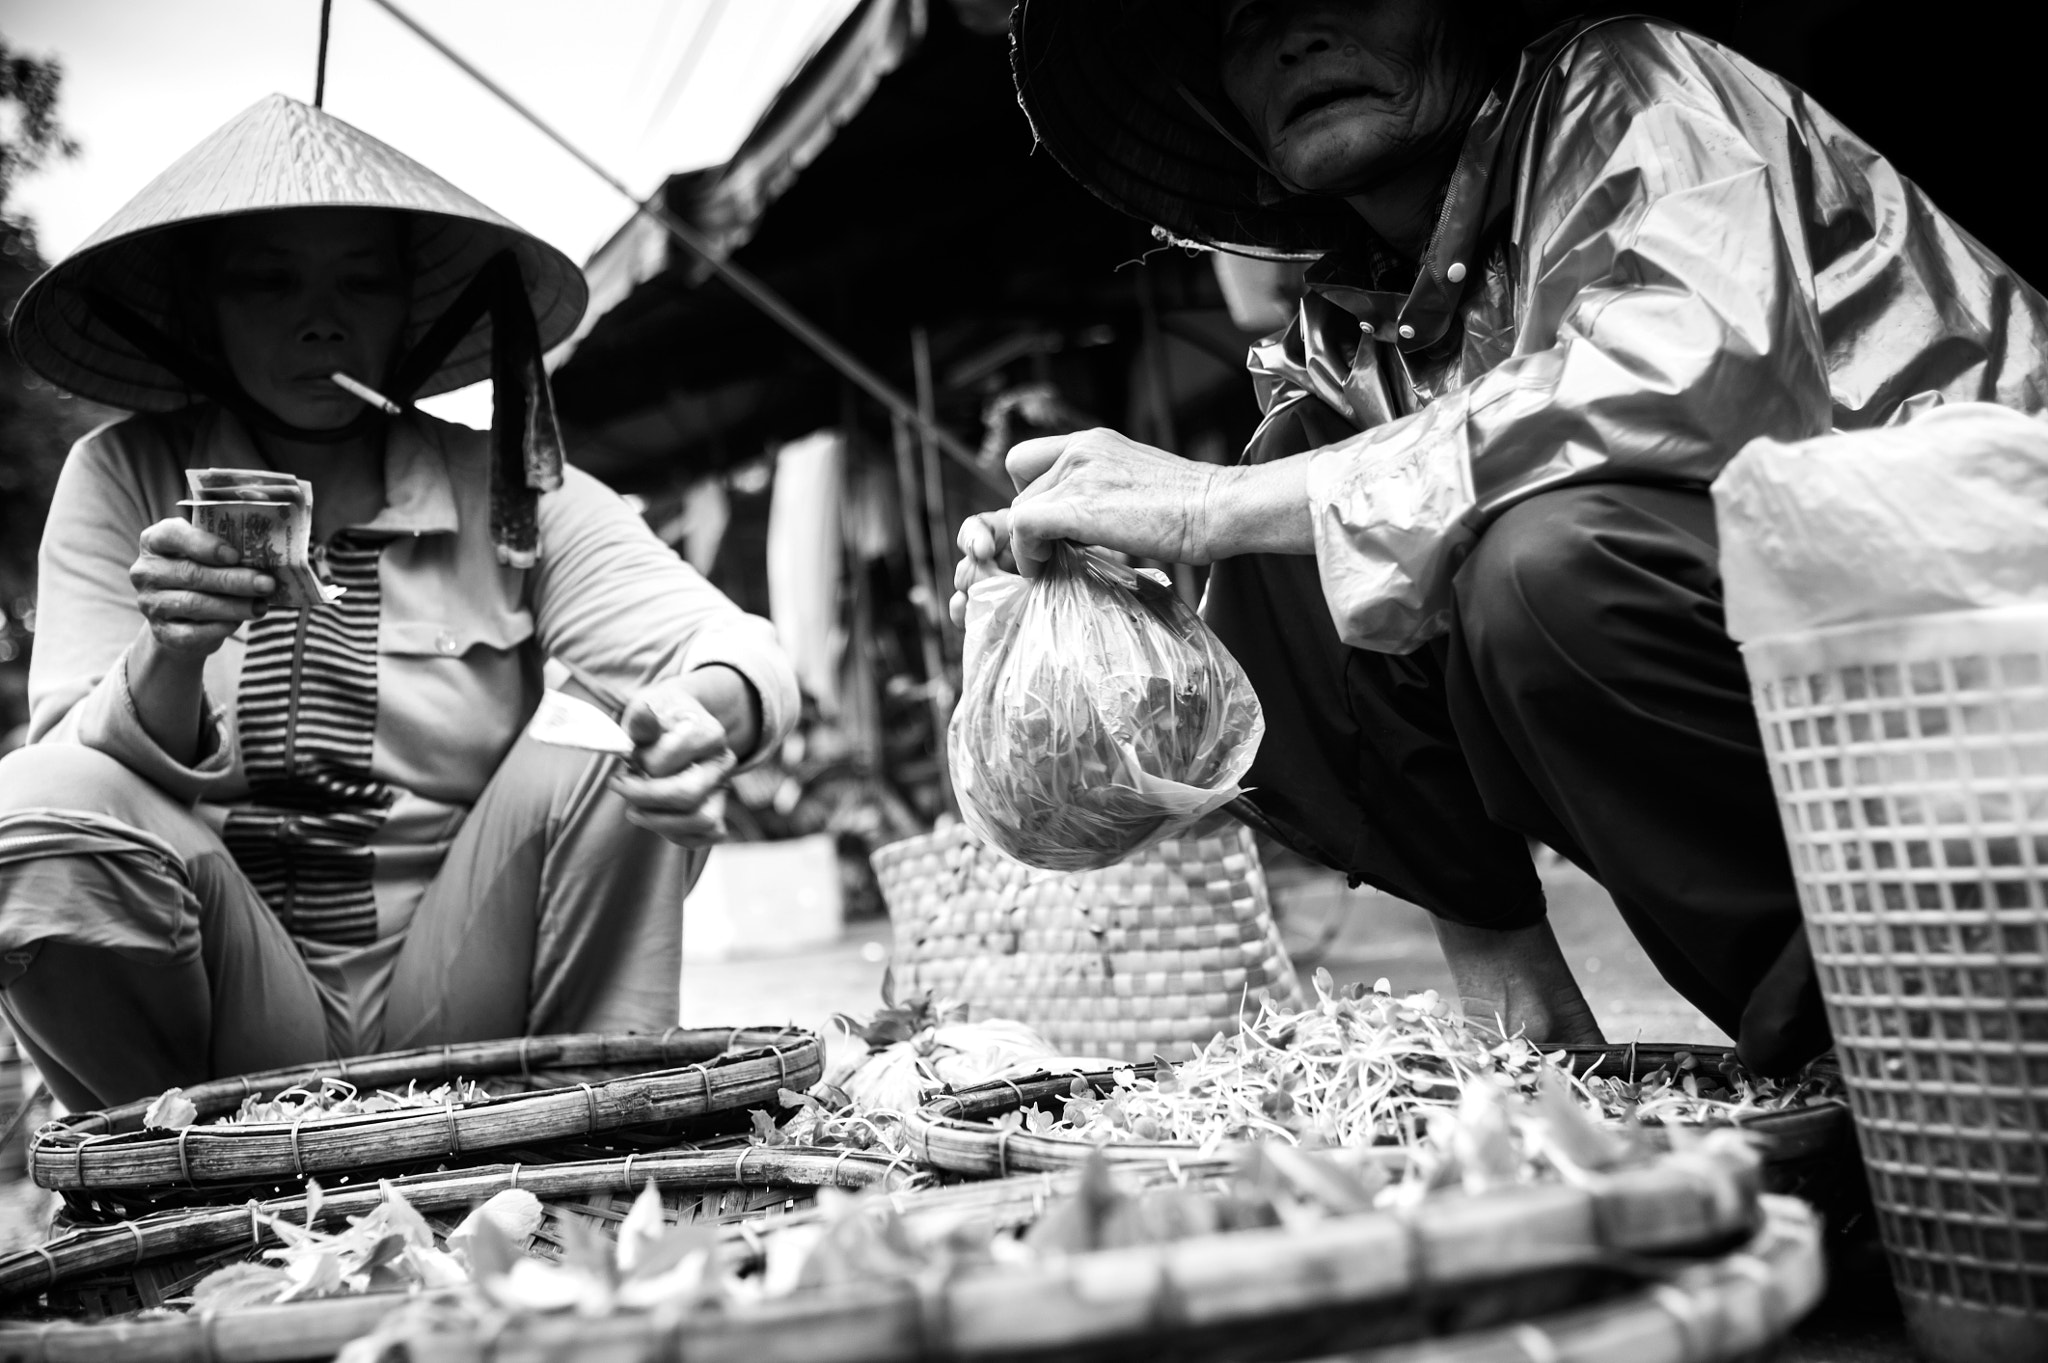 Photograph Hoi-An Traditional Wet Market by Kritsana Pinaphang on 500px